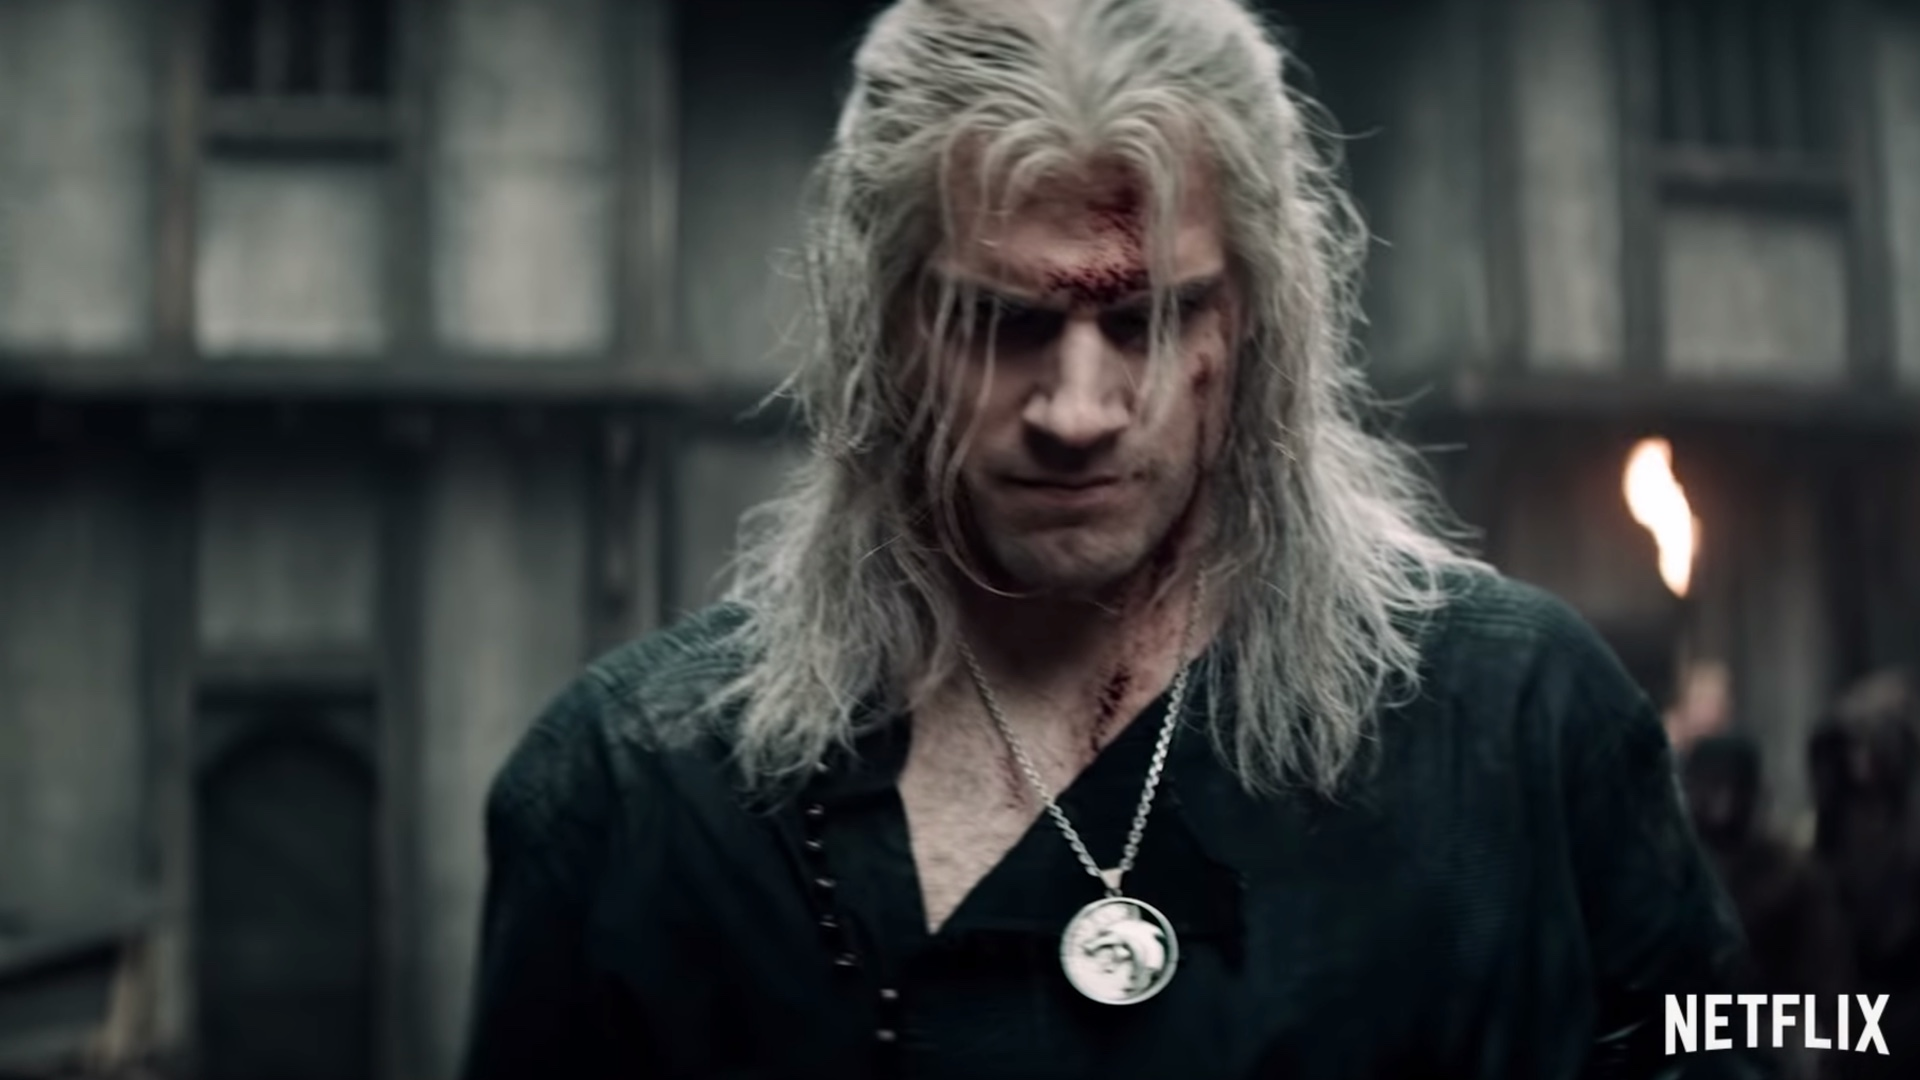 Netflix Unleashes The First Badass Trailer For The Witcher